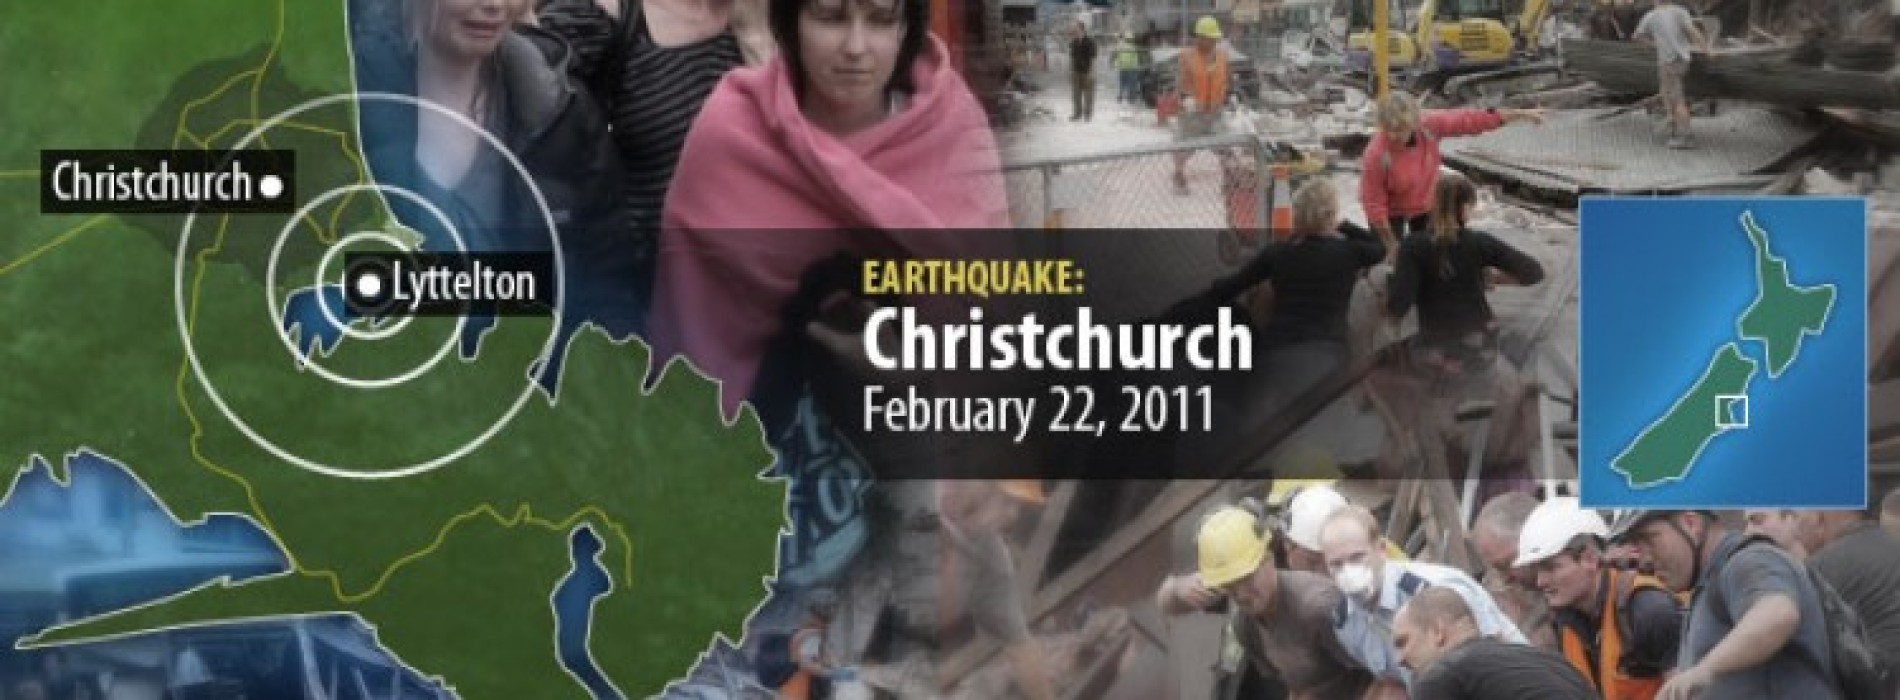 My life after the New Zealand Earthquakes